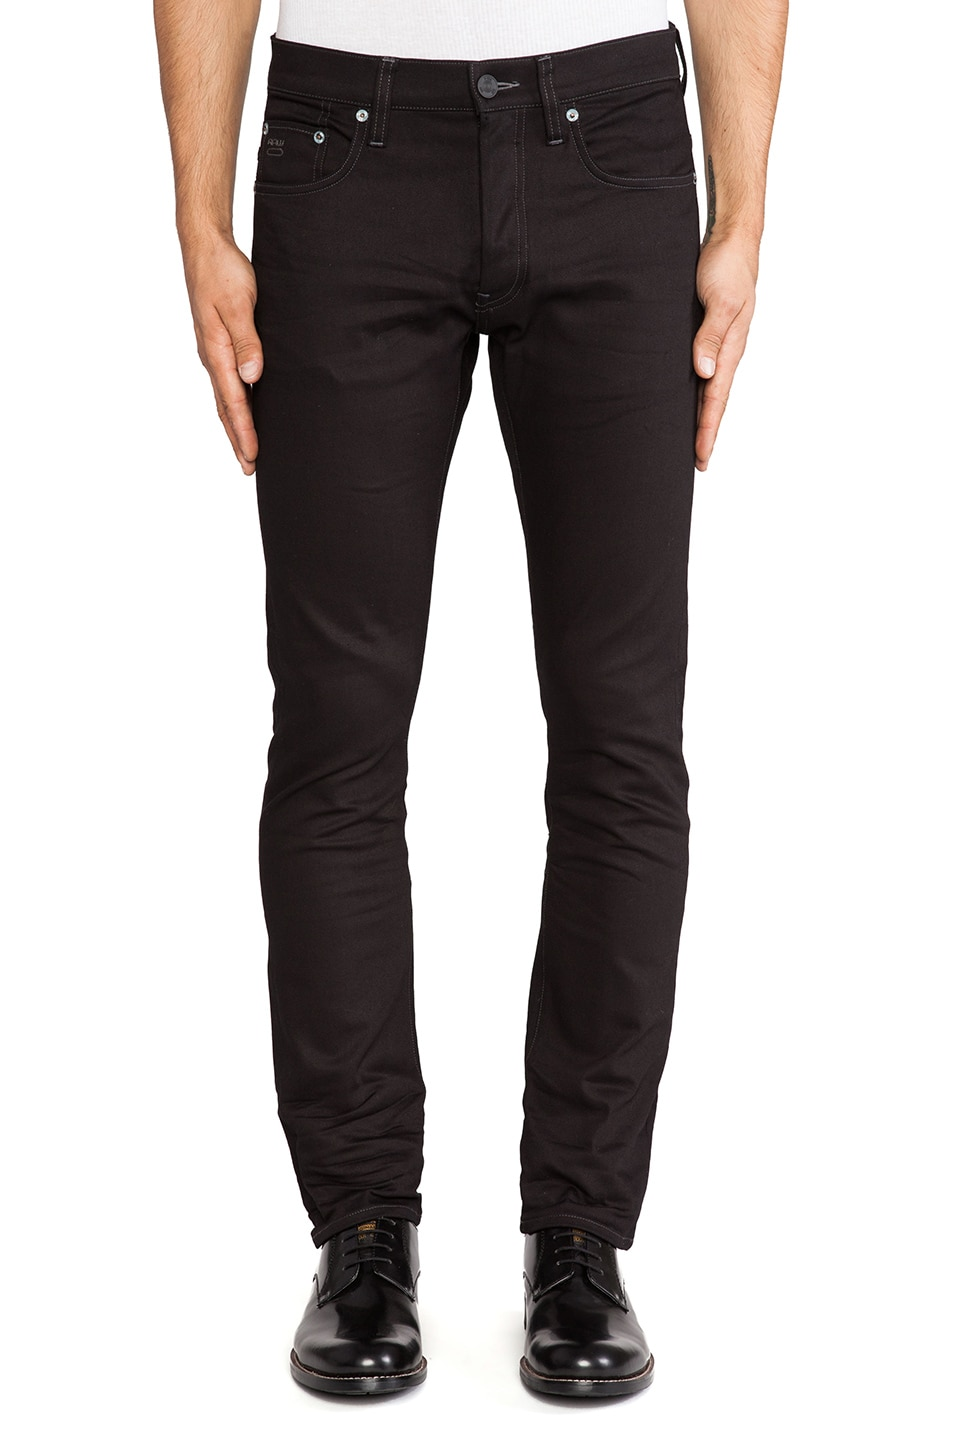 G-Star 3301 Slim Comfort Black Edington Denim in 3D Raw